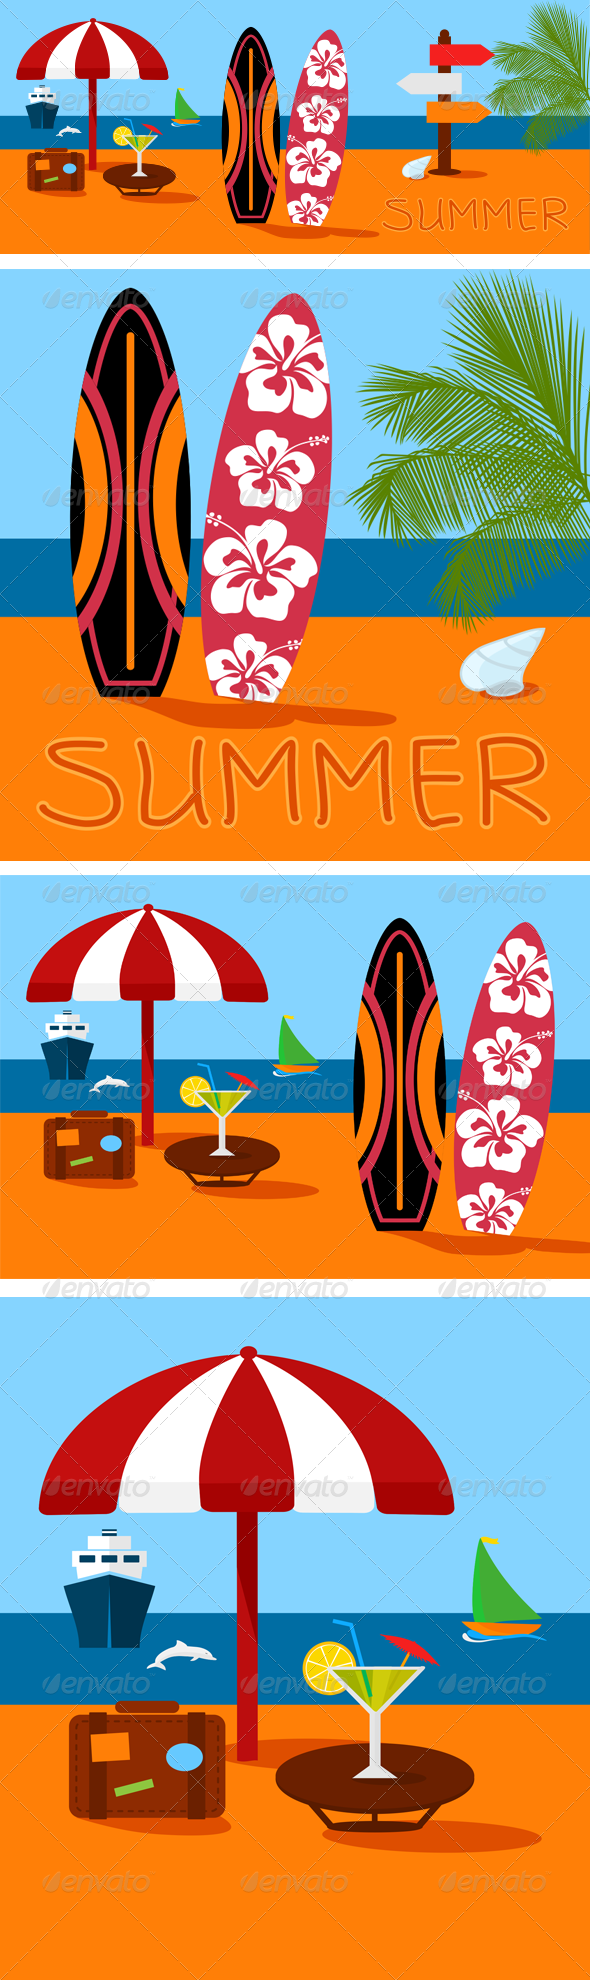 Summer Beach Vector Illustration